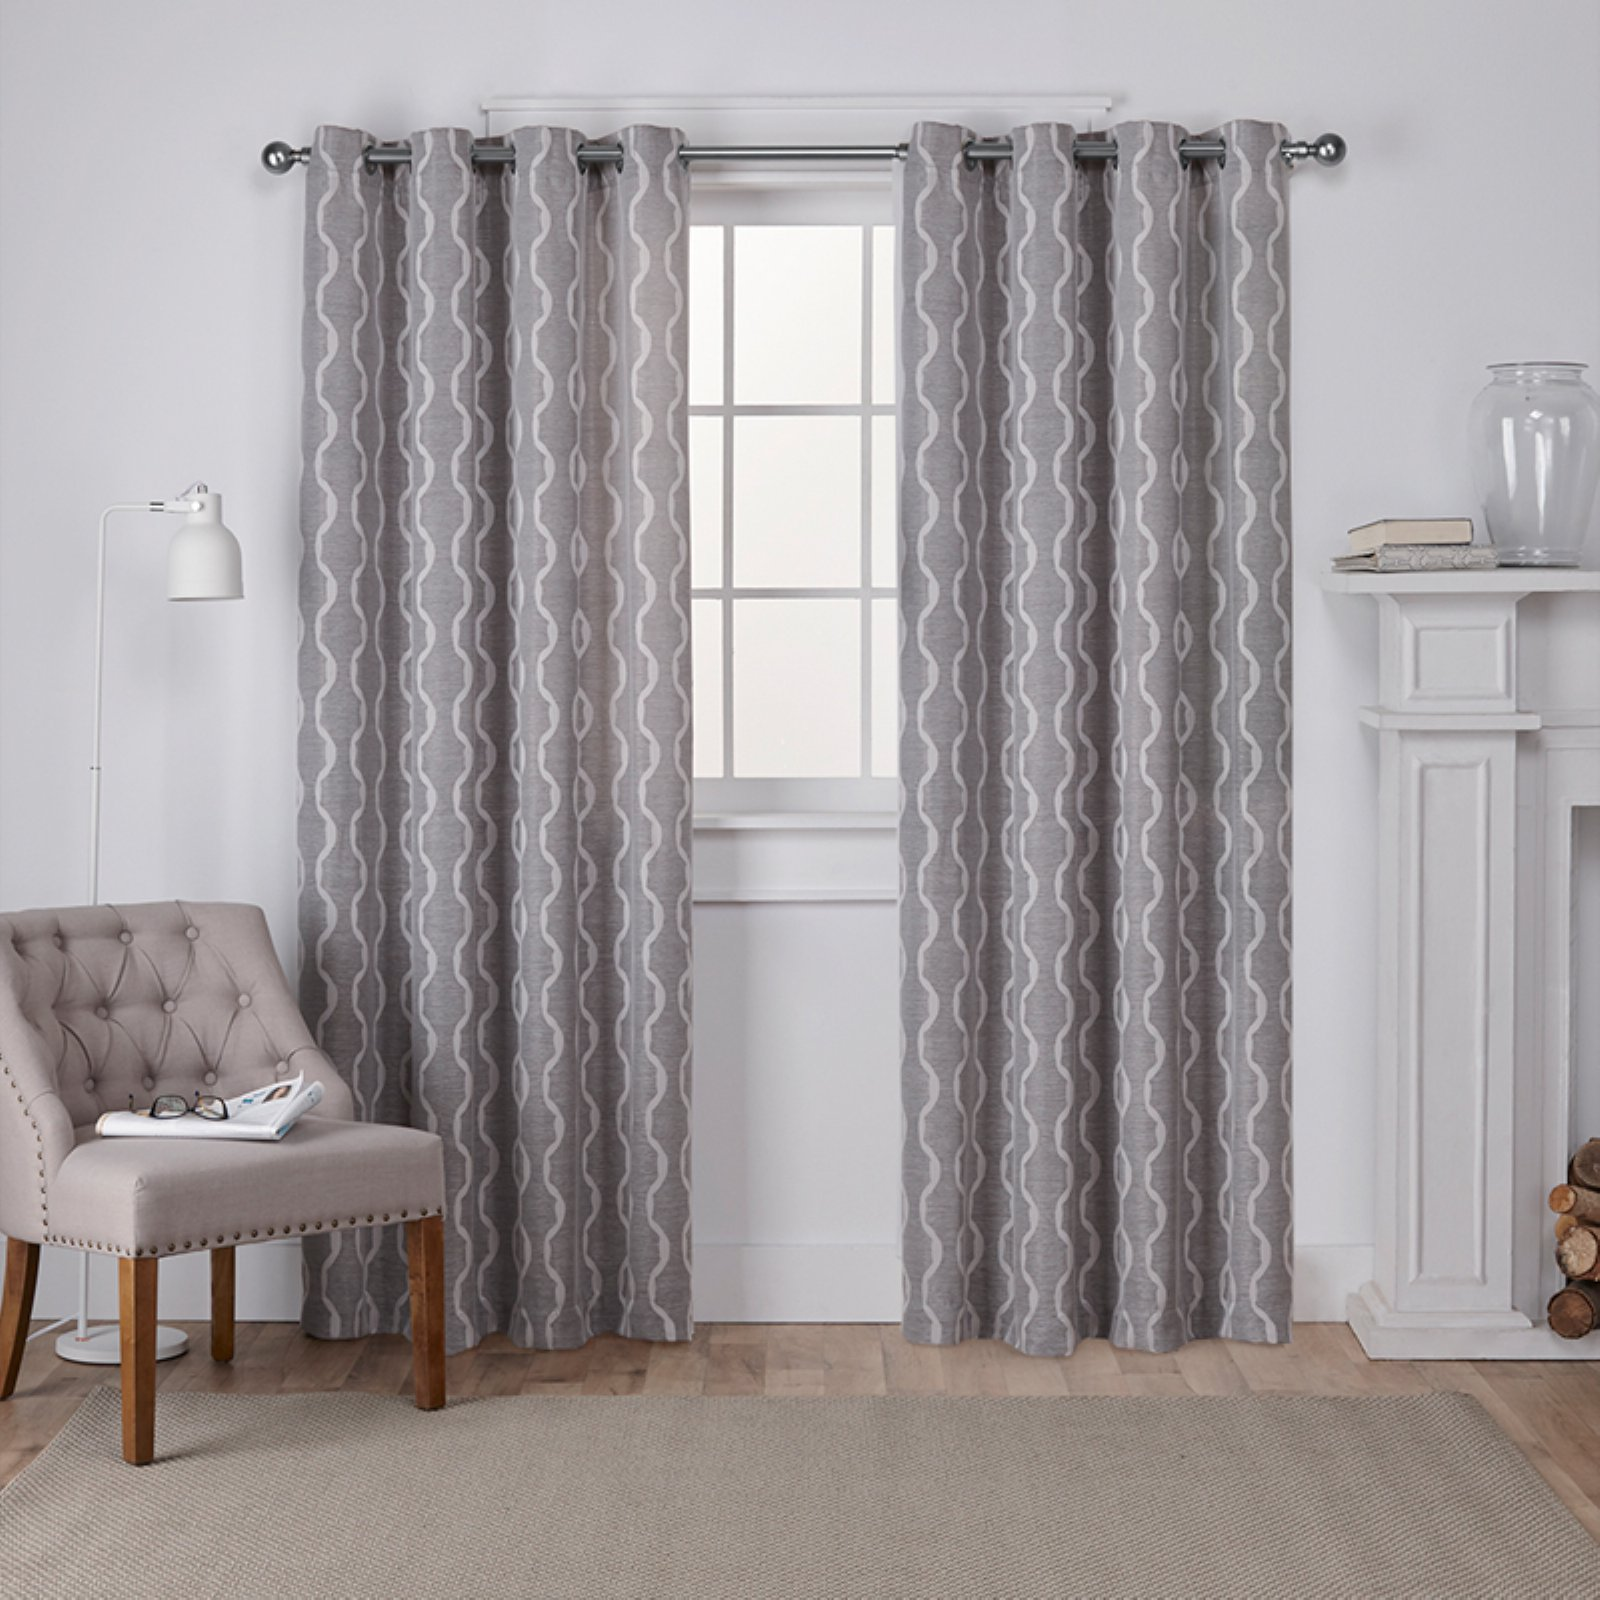 Exclusive Home Baroque Textured Linen Look Jacquard Window Curtain Panel Pair with Grommet Top